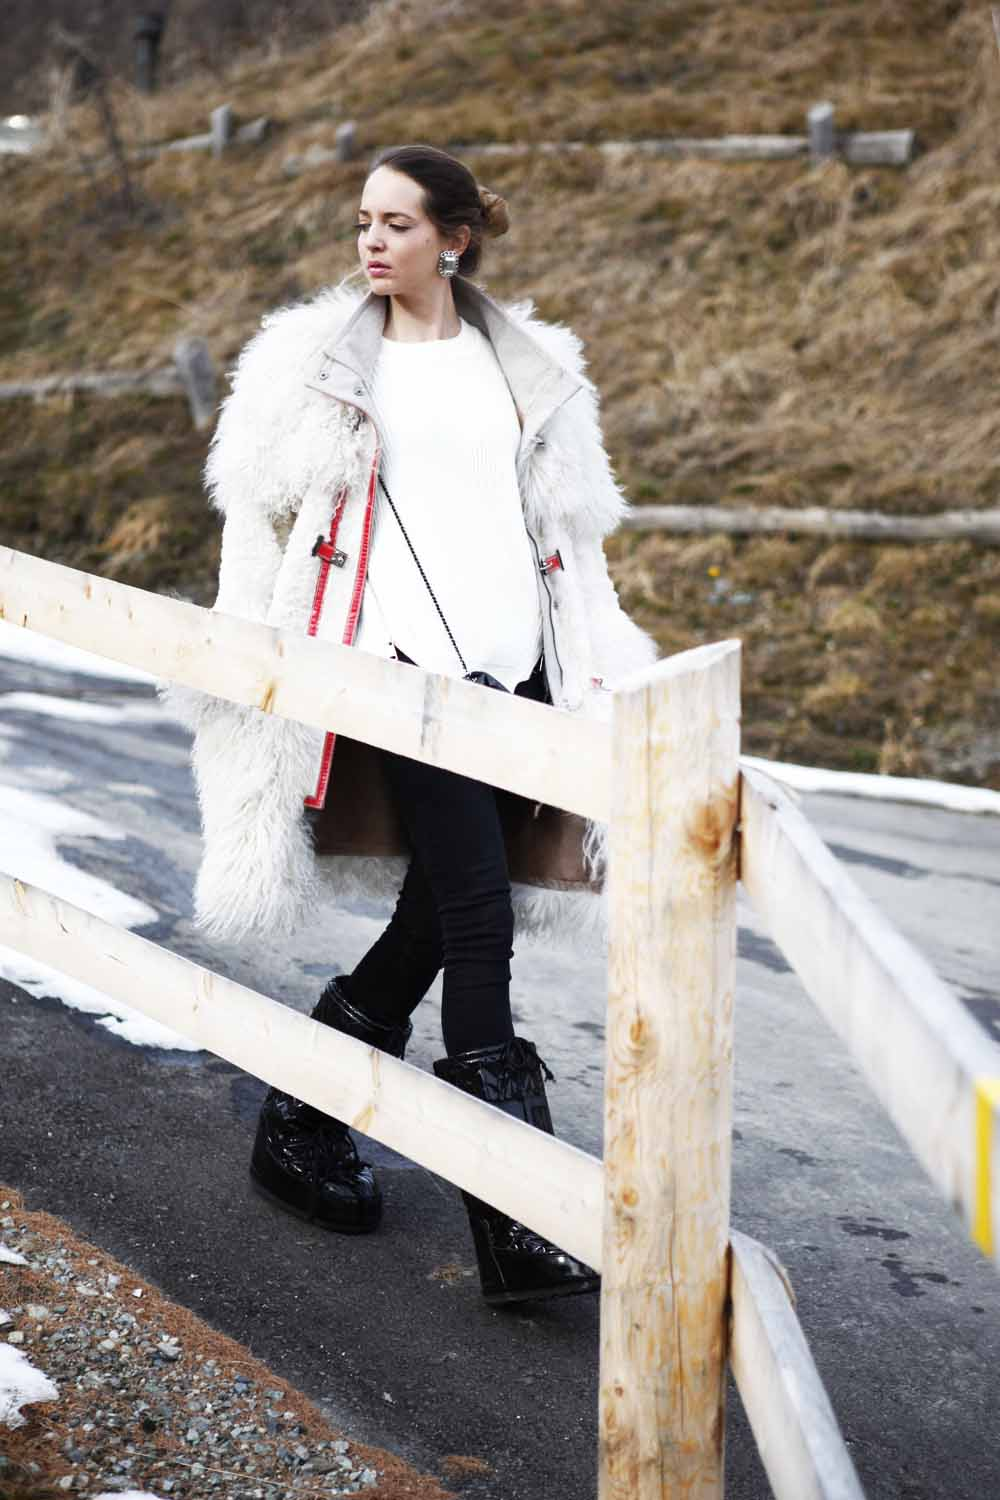 fashionable look for mountain saint moritz